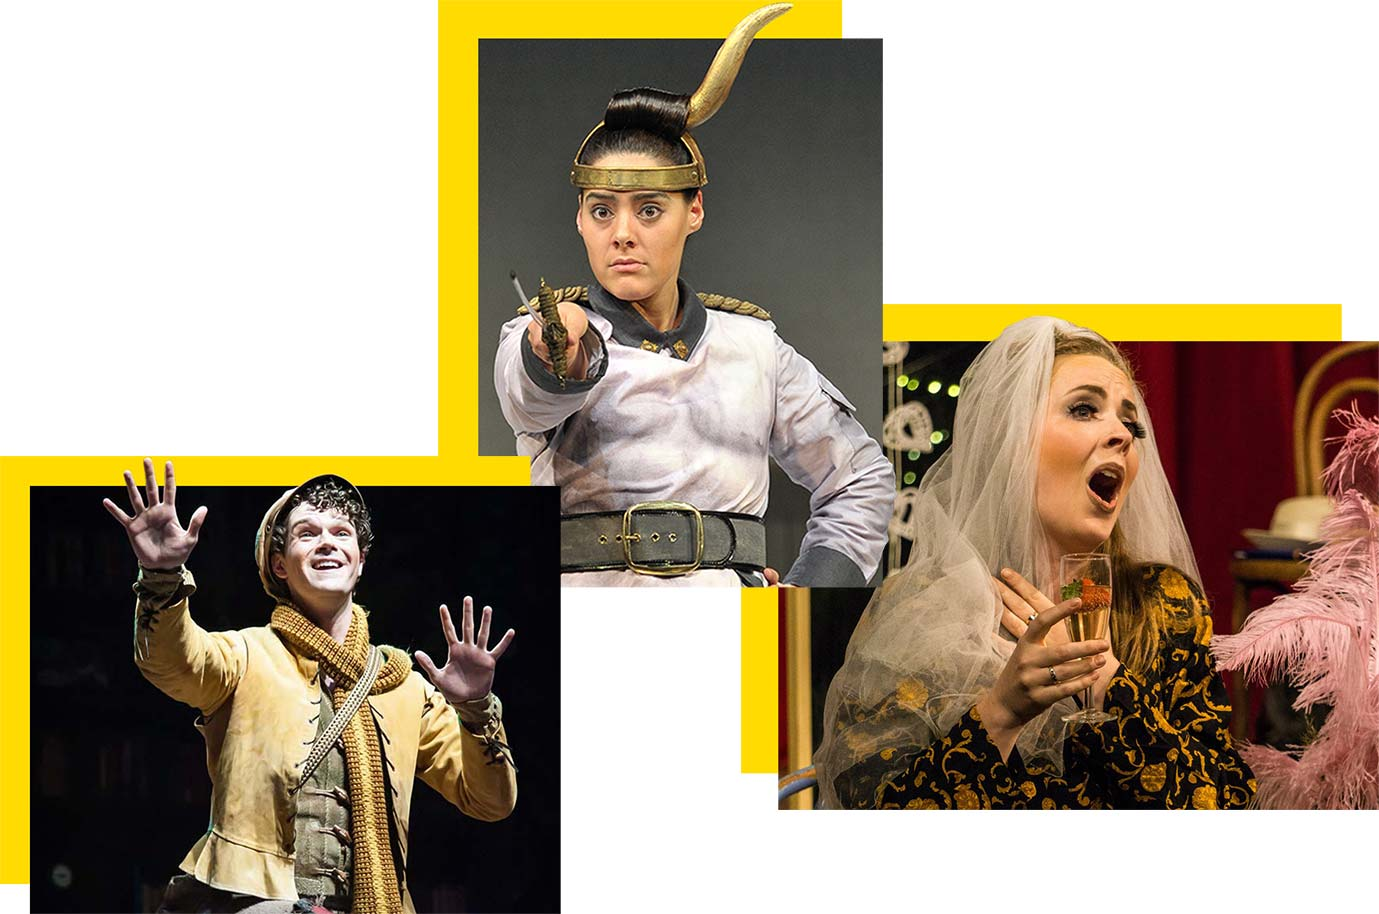 Helen Sykes Artists' Management – Opera artist agency based in London